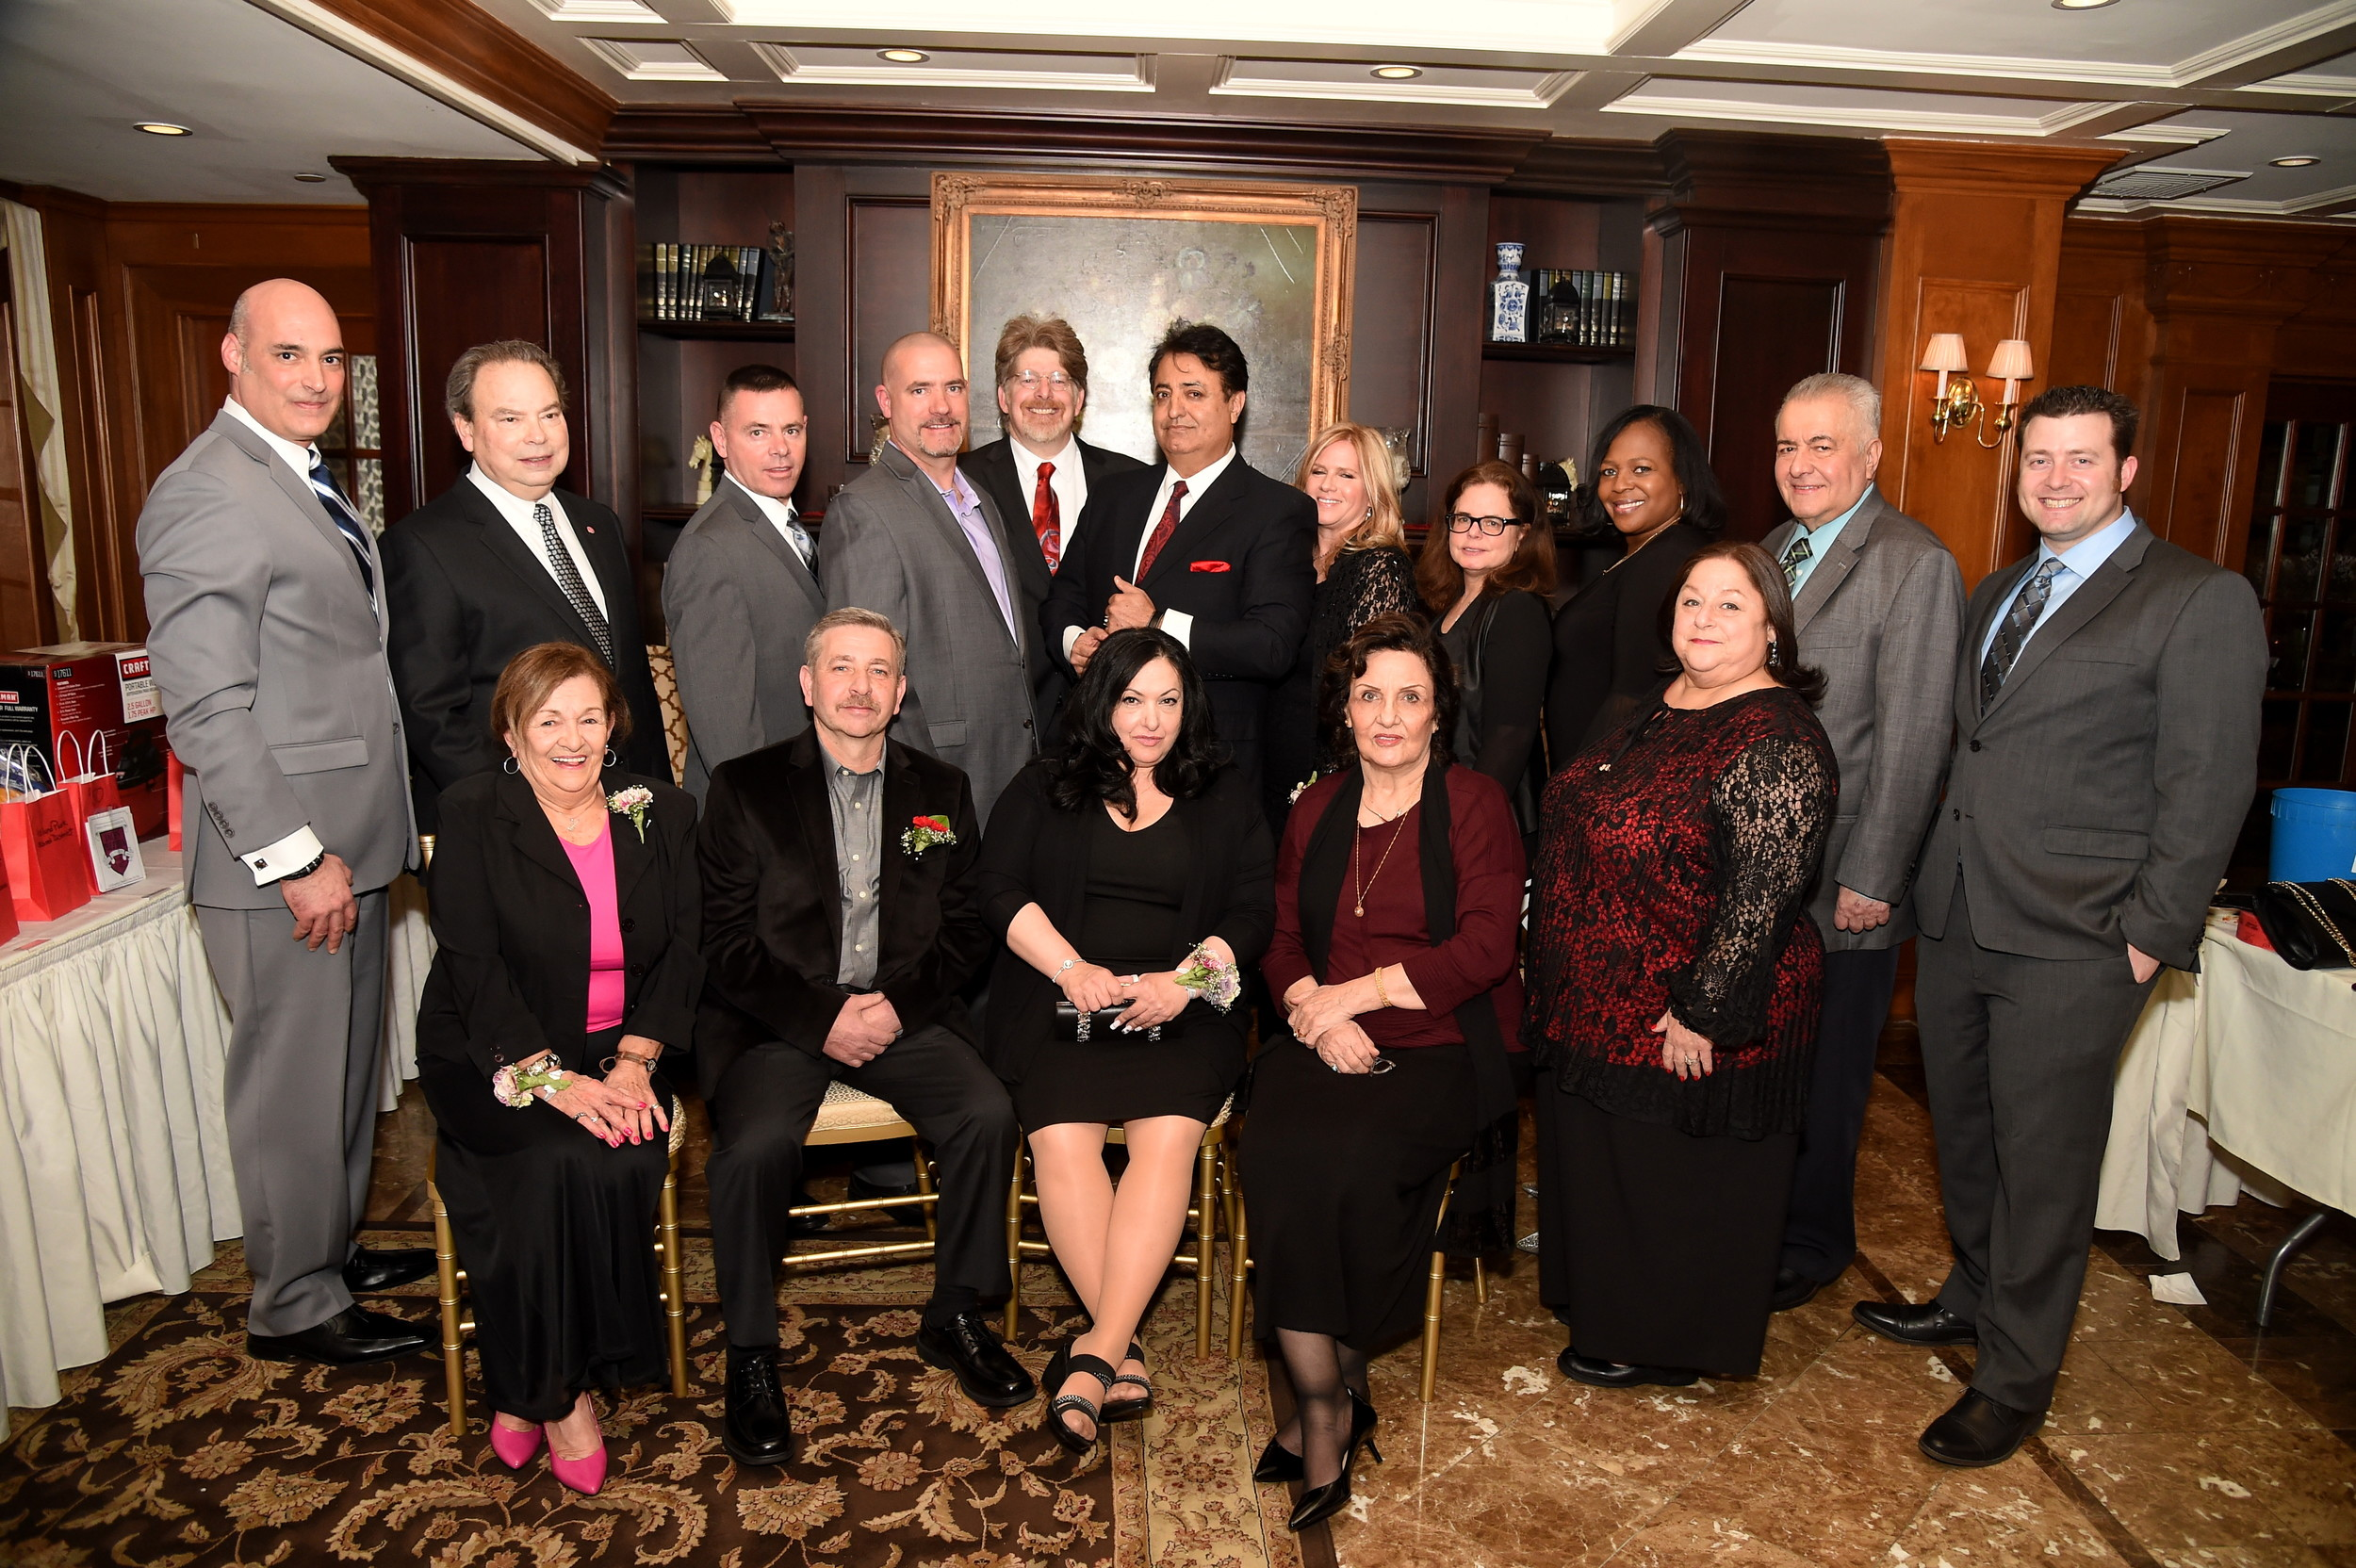 Island Park Chamber of Commerce members joined honorees at its 67th annual Awards Dinner & Dance at Bridgeview Yacht Club on March 30.